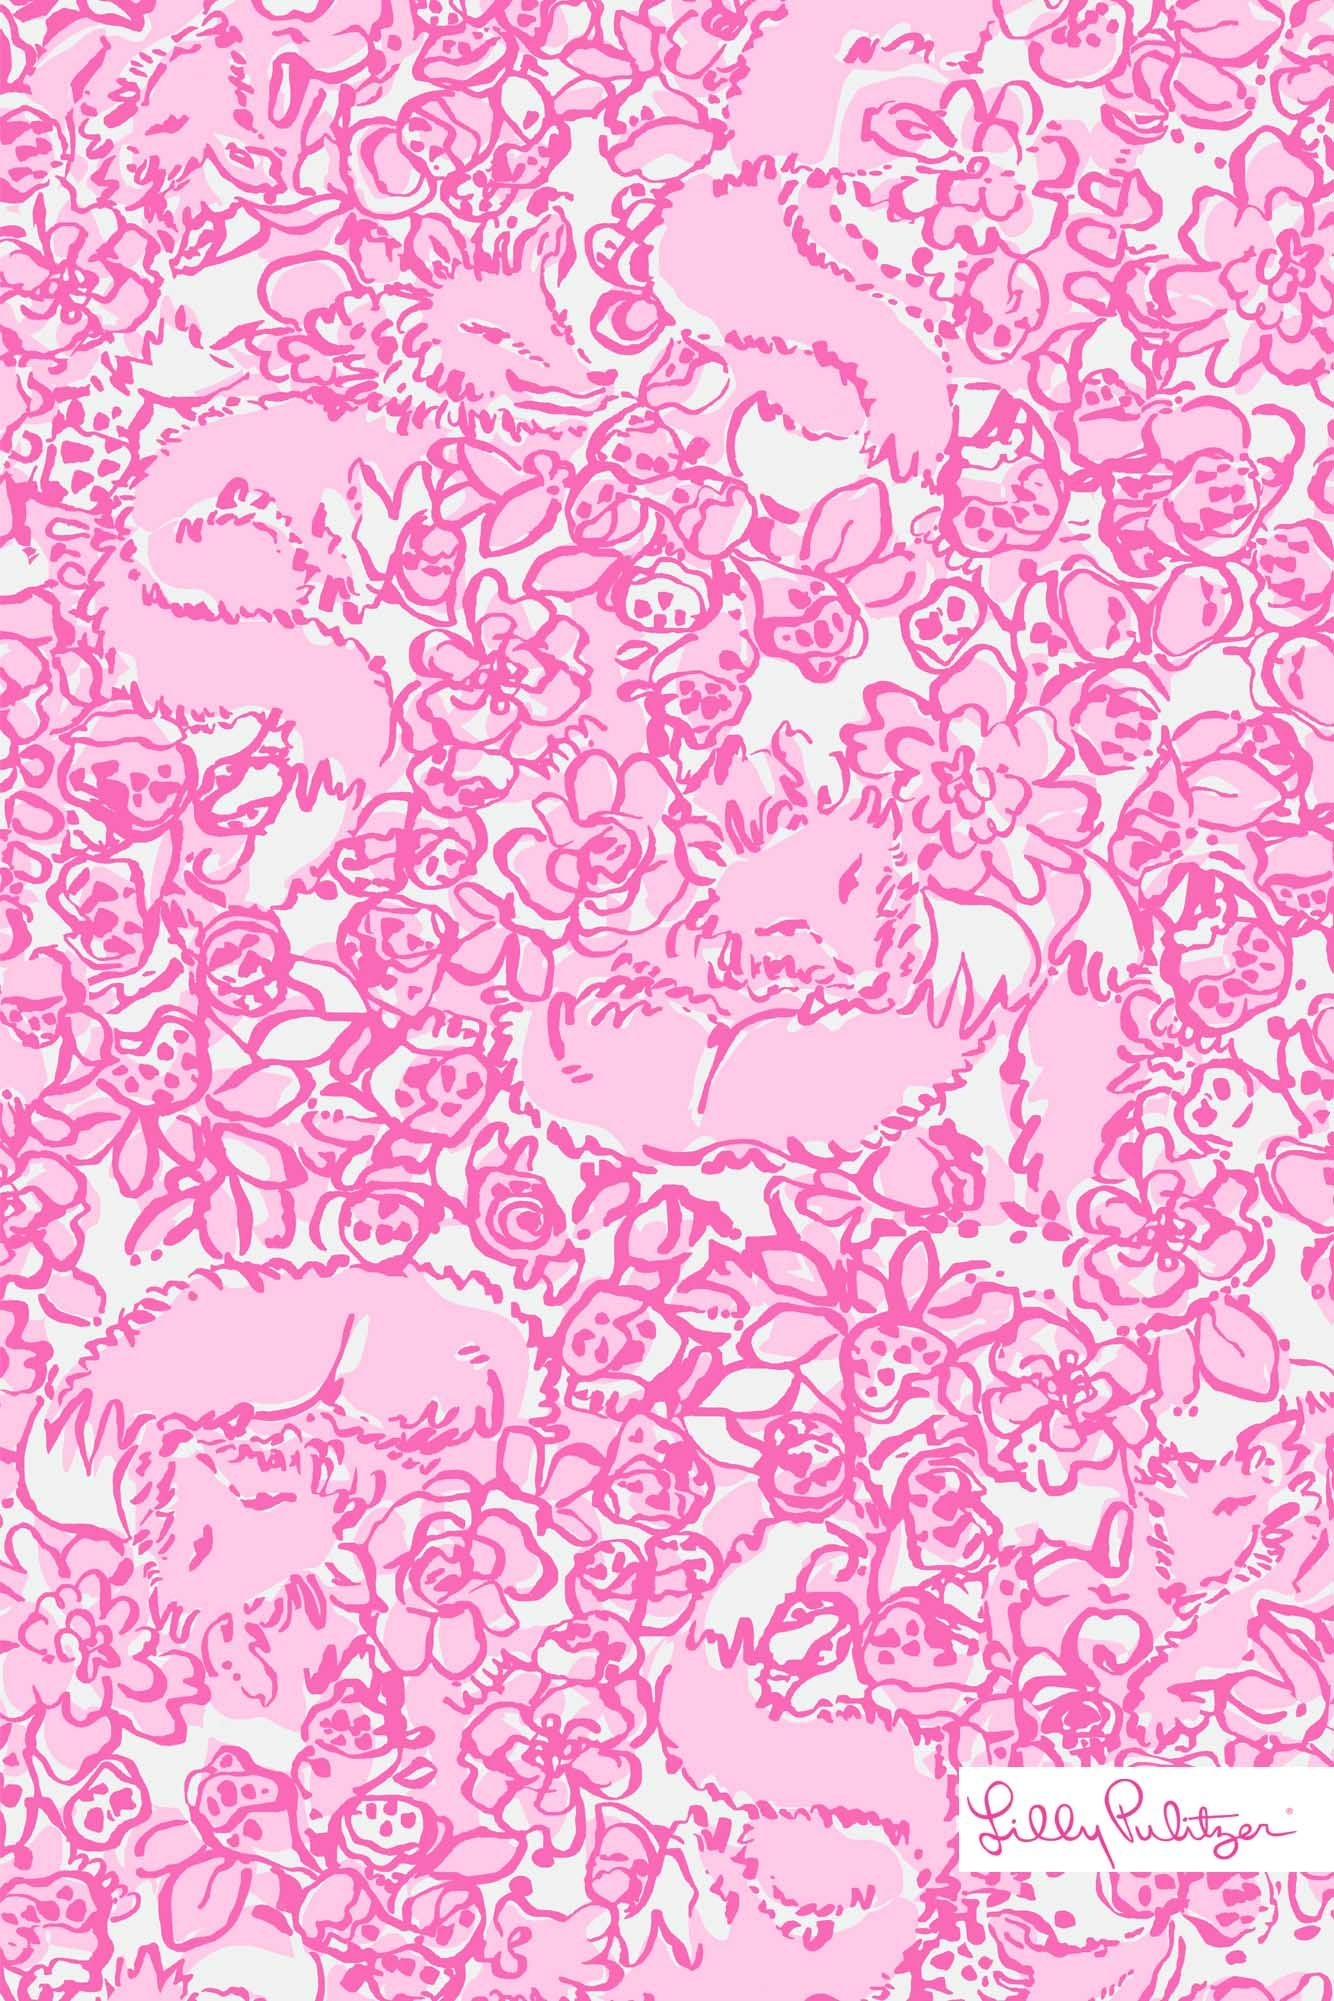 Vineyard Vines Wallpaper Iphone 6 Lilly Pulitzer She S A Fox Iphone Wallpaper Patterns We